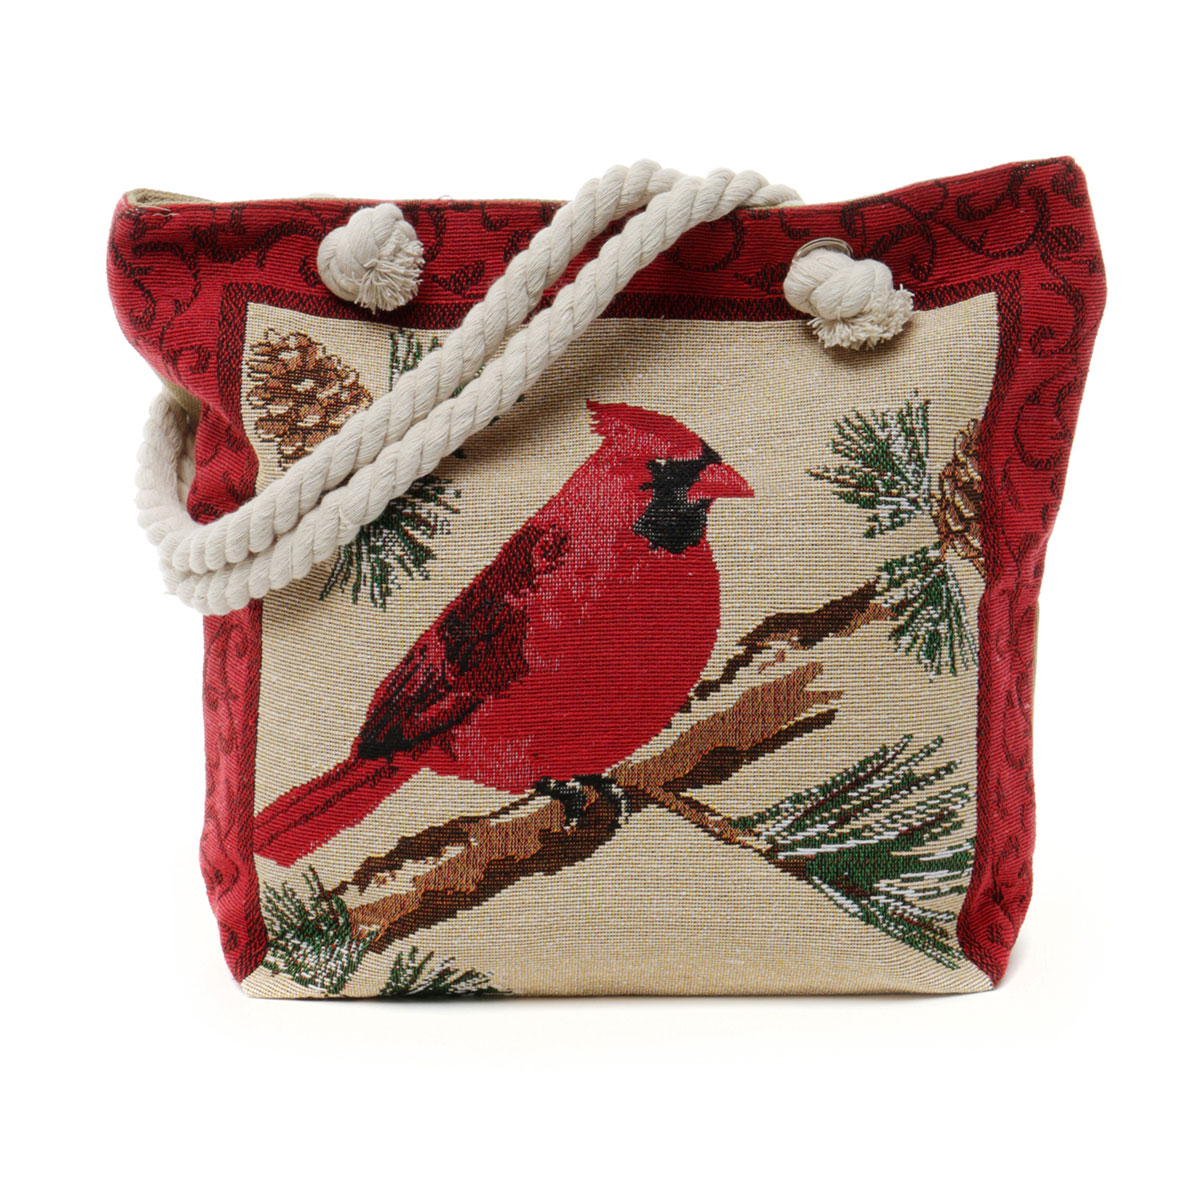 Cardinal Tapestry Bag with Adjustable Shoulder Strap, Lining and